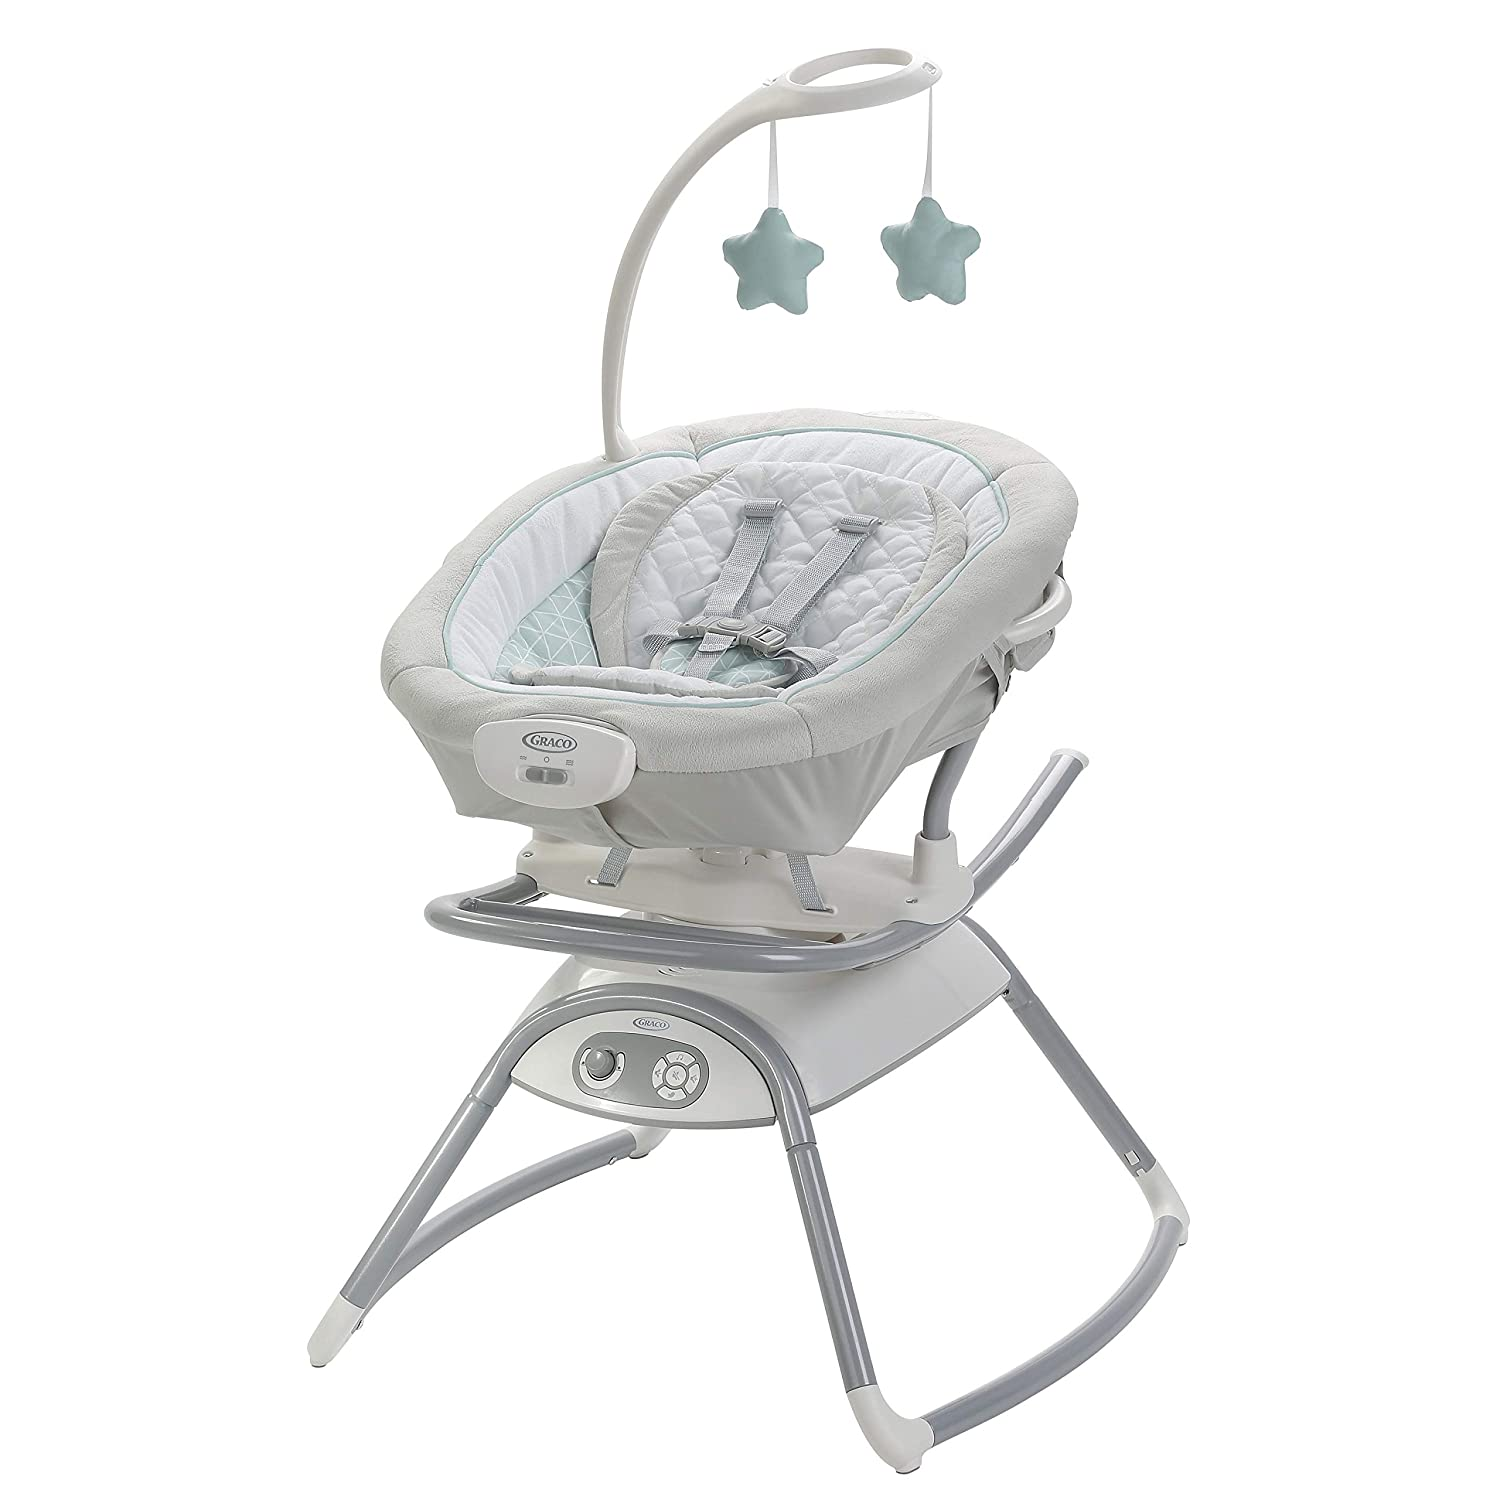 Graco Duet Glide Gliding Swing with Portable Rocker, Winfield Graco Baby 2065965